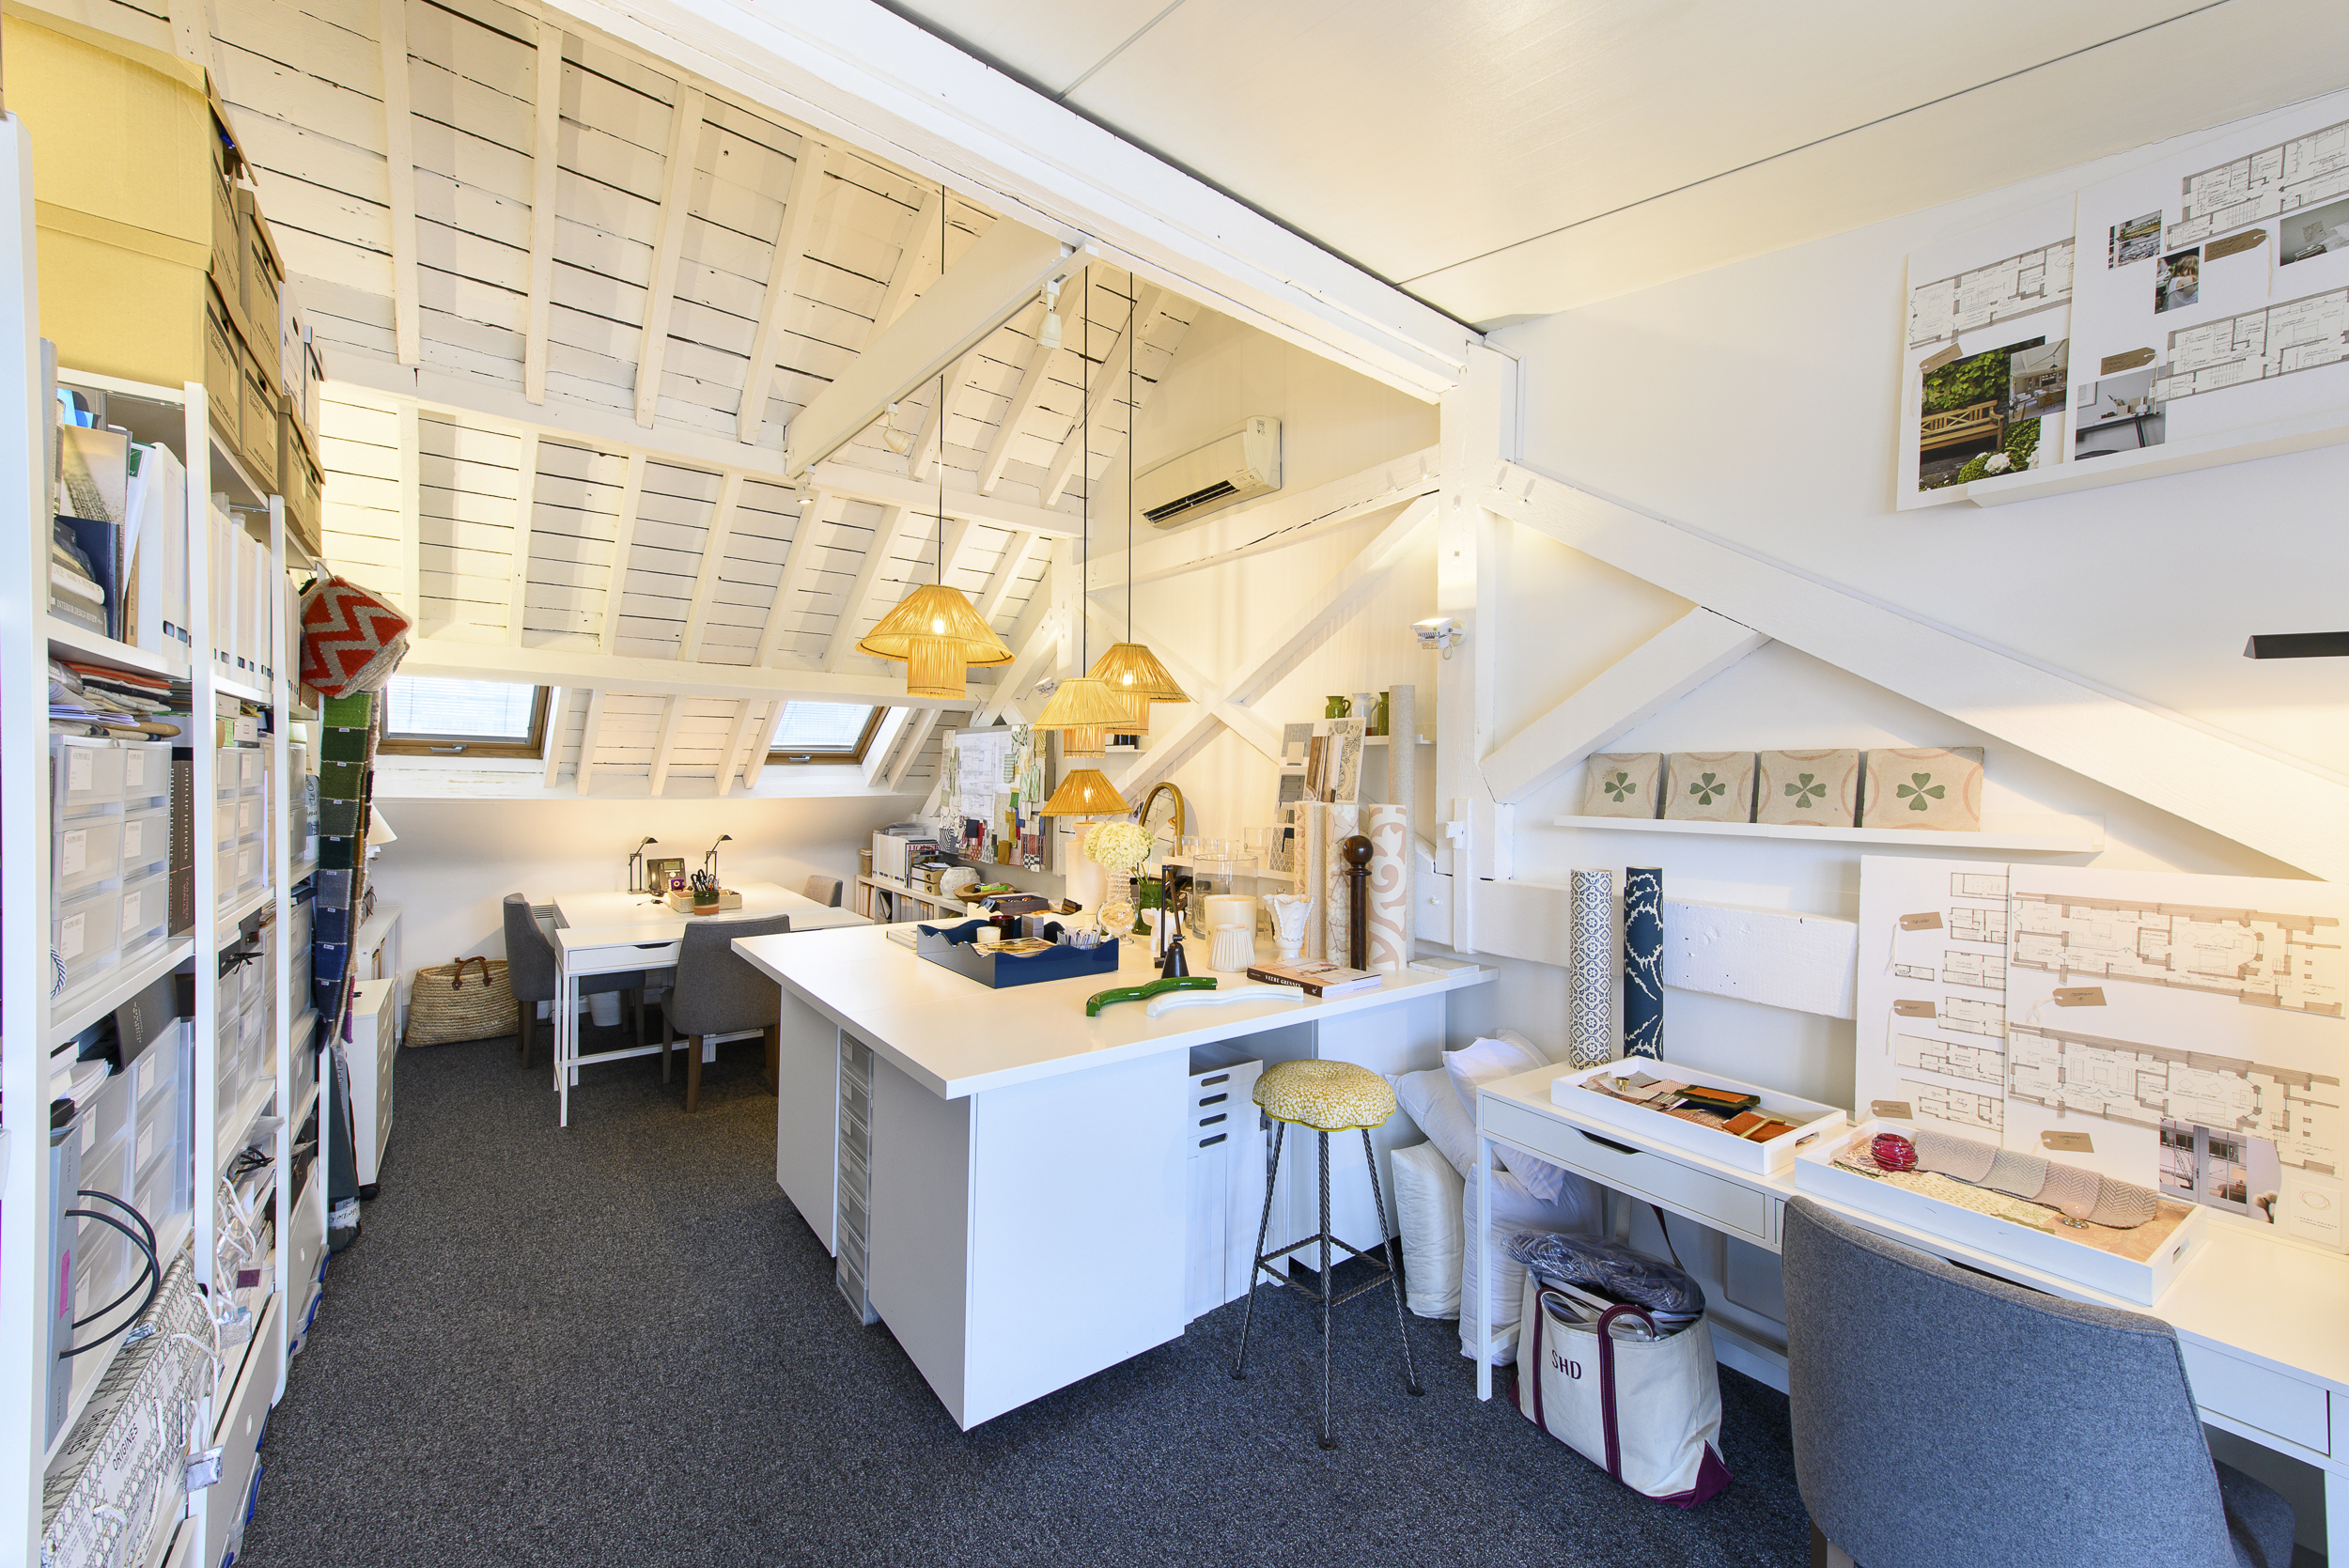 A bright an airy office space at Worlds End Studios featuring beams and a workspace.